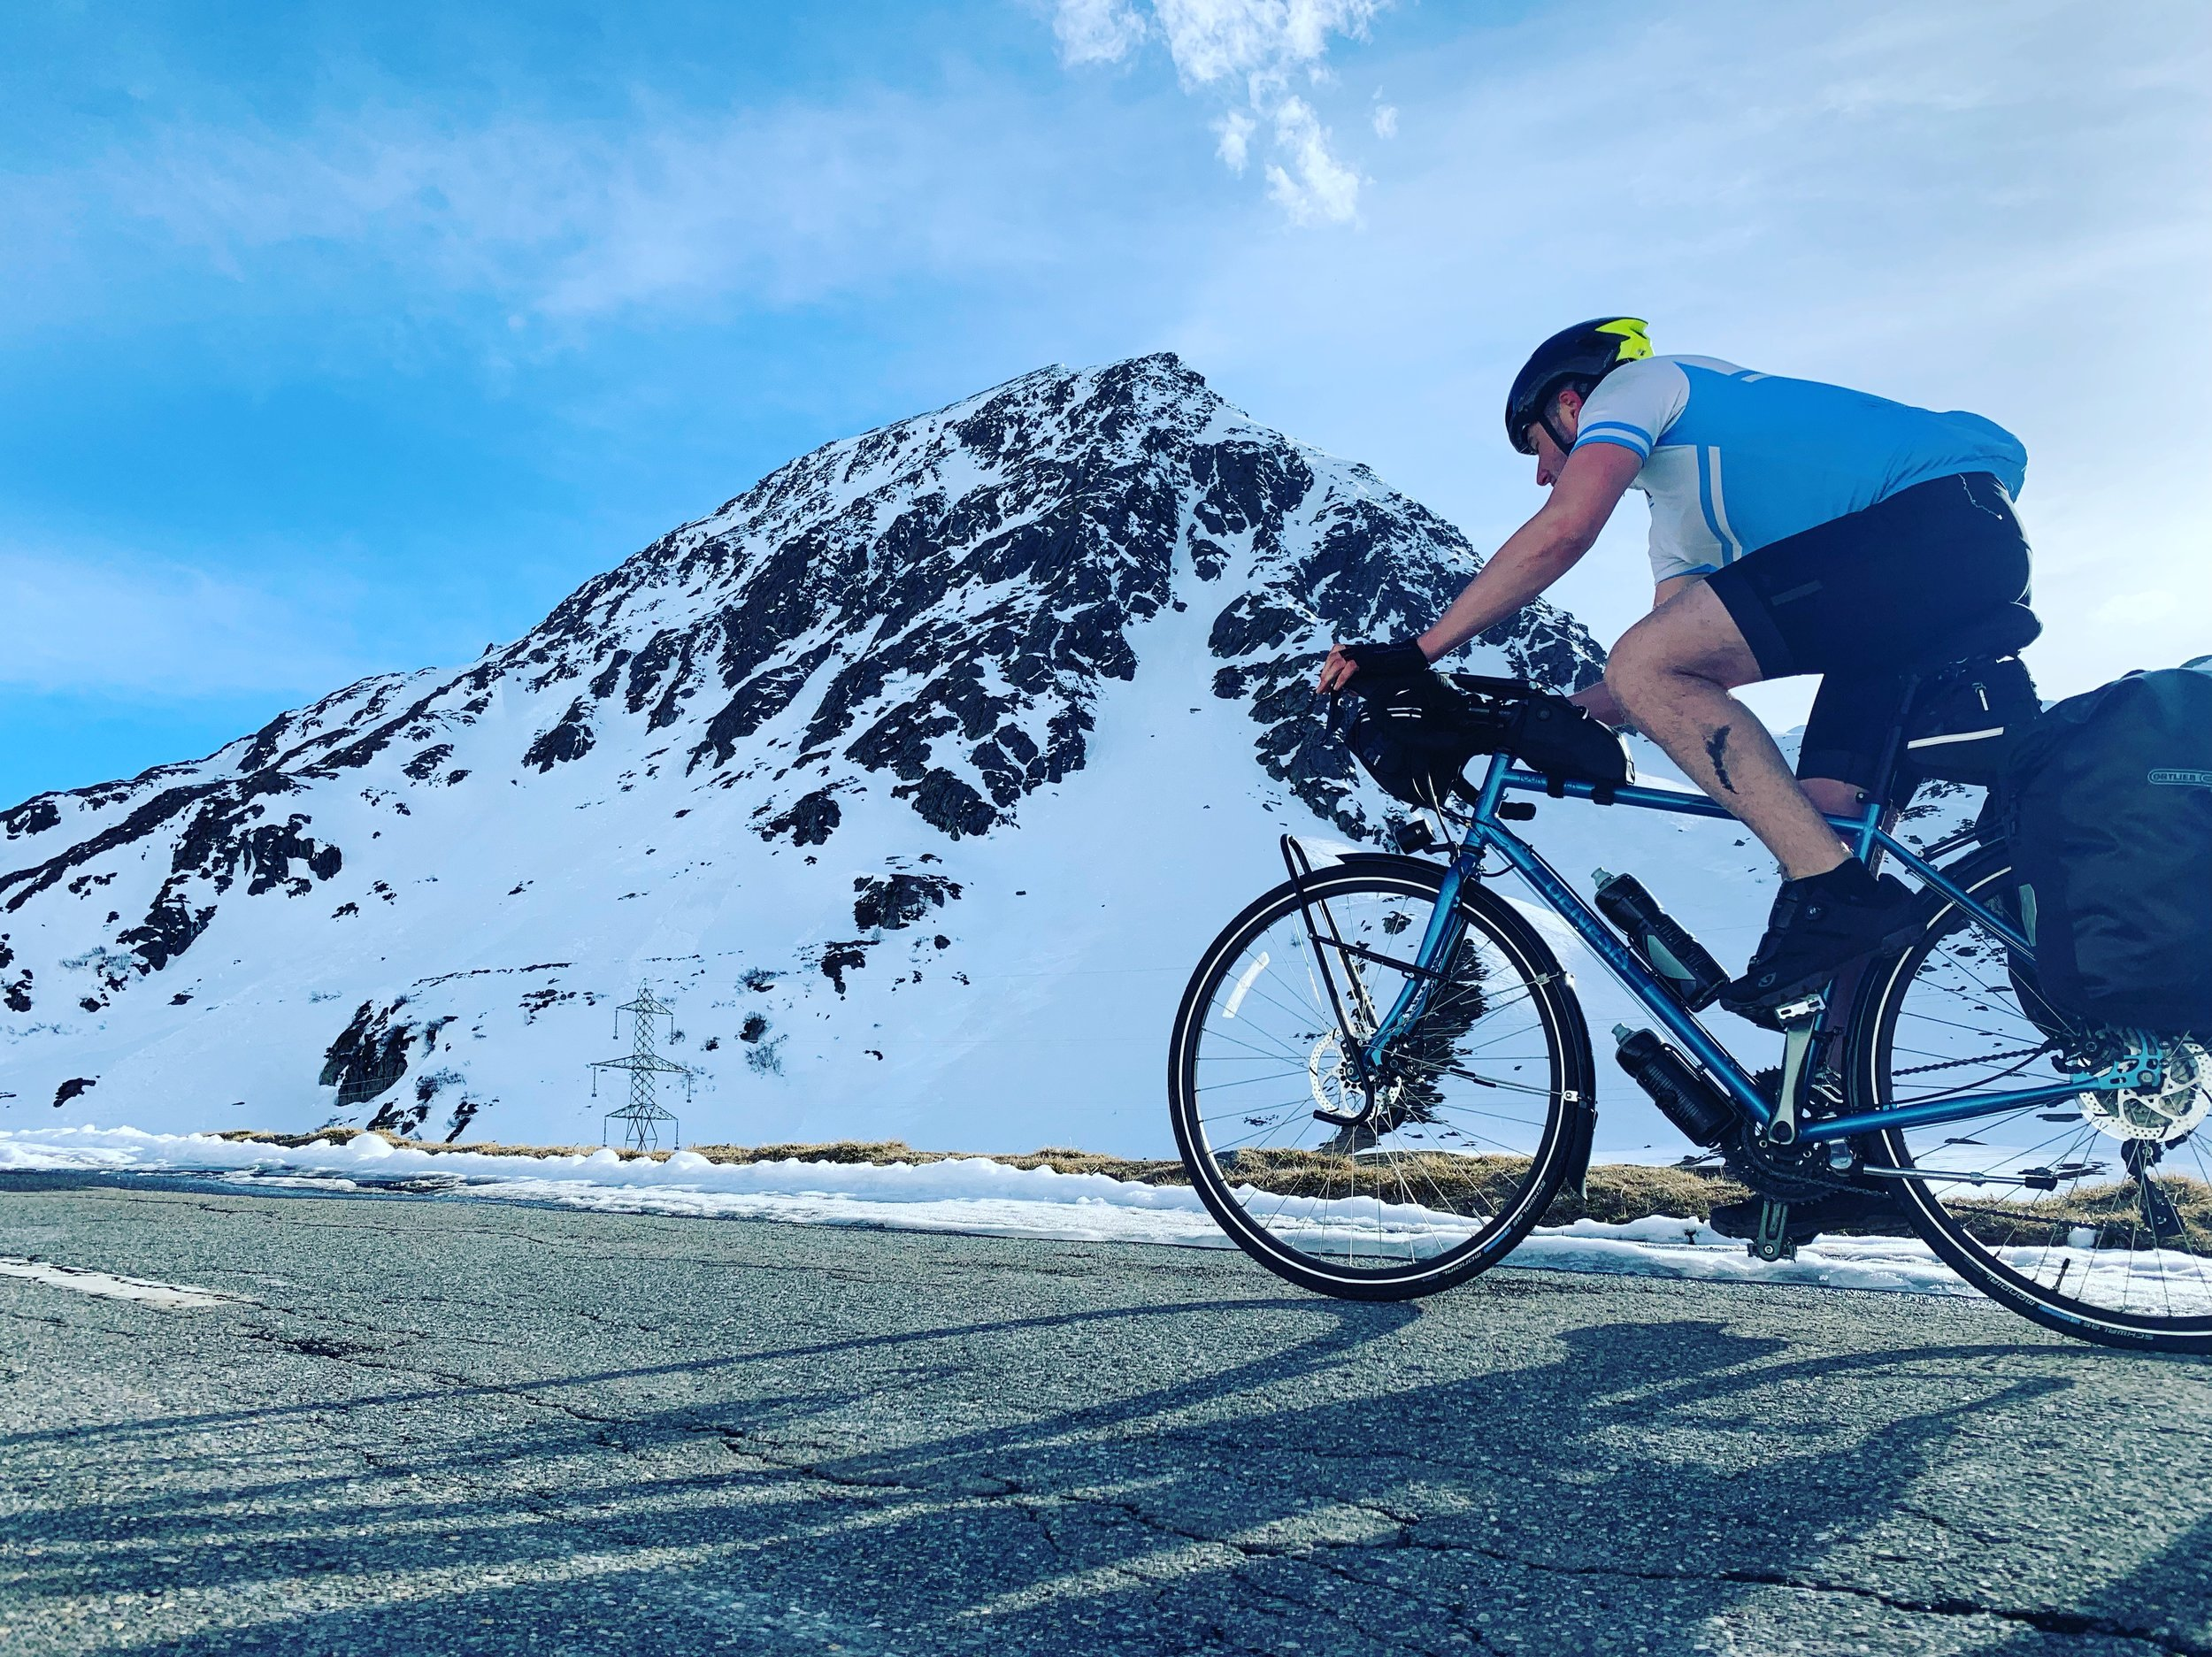 the impossible dream - This is now my journey of becoming a world champion athlete.1. Warm up: Cycle around the world.2. World record: Fastest cycle around the world3. Olympic Champion: Gold Medal Paris 20243. World Champion: Win the Tour De France.This is my Impossible Dream.